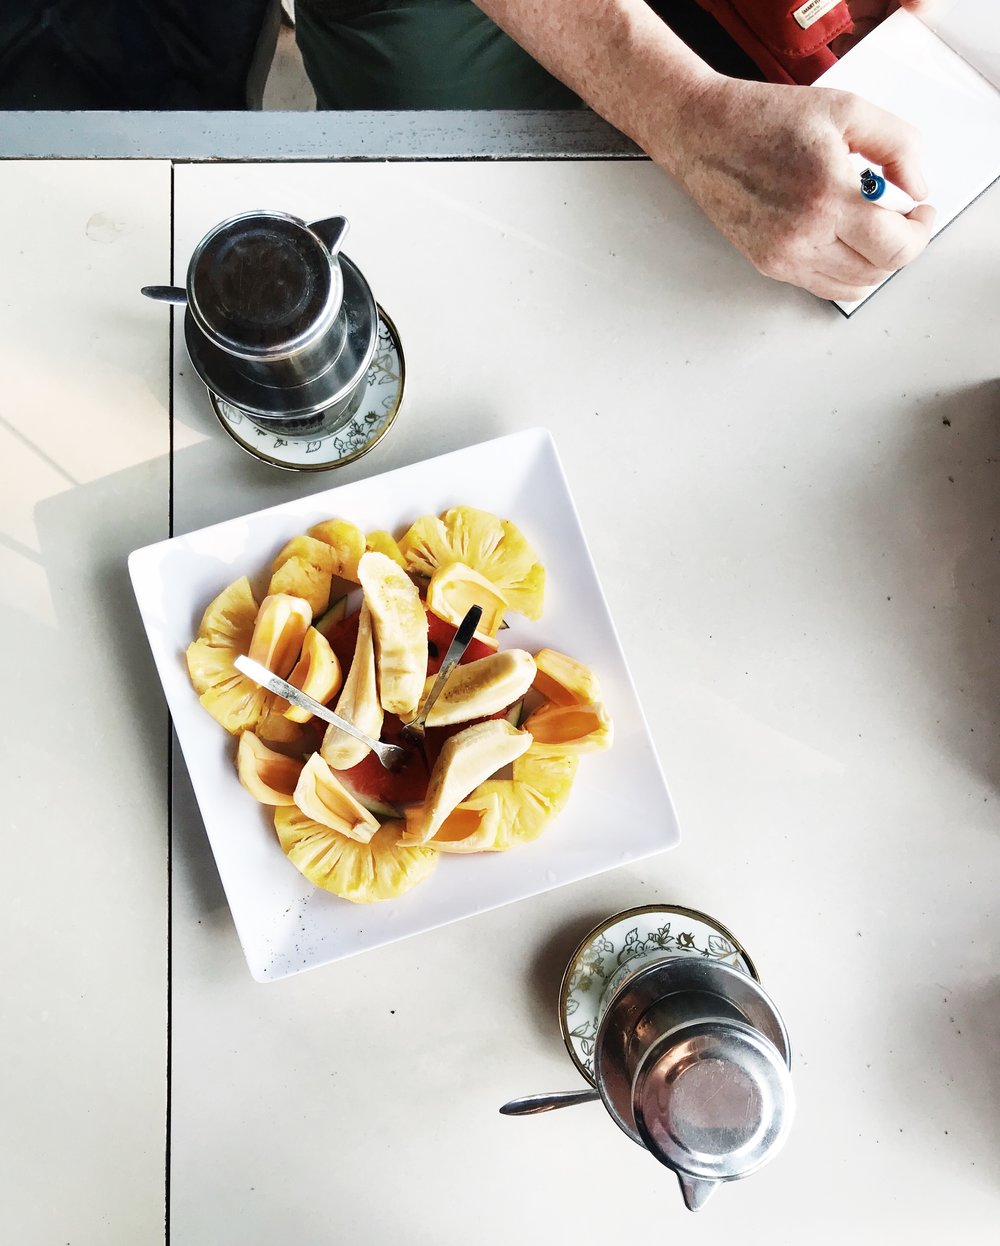 Vietnam Part 3 | The Best of Food and Coffee in the Mekong Delta + Ho Chi Minh City